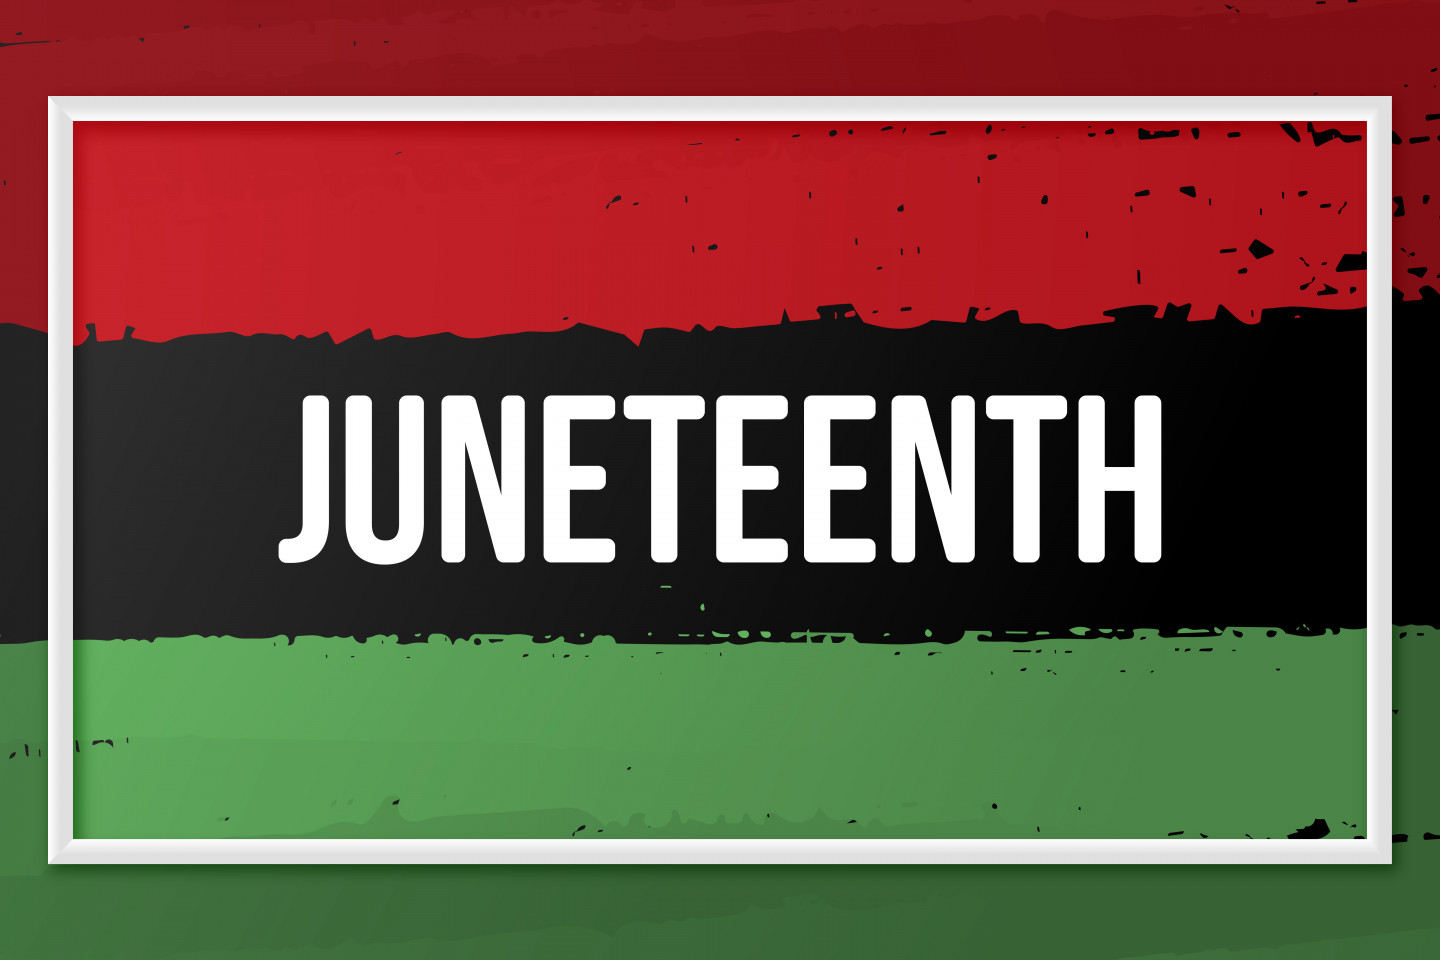 """The word """"Juneteenth"""" with a background that is red, black and green."""